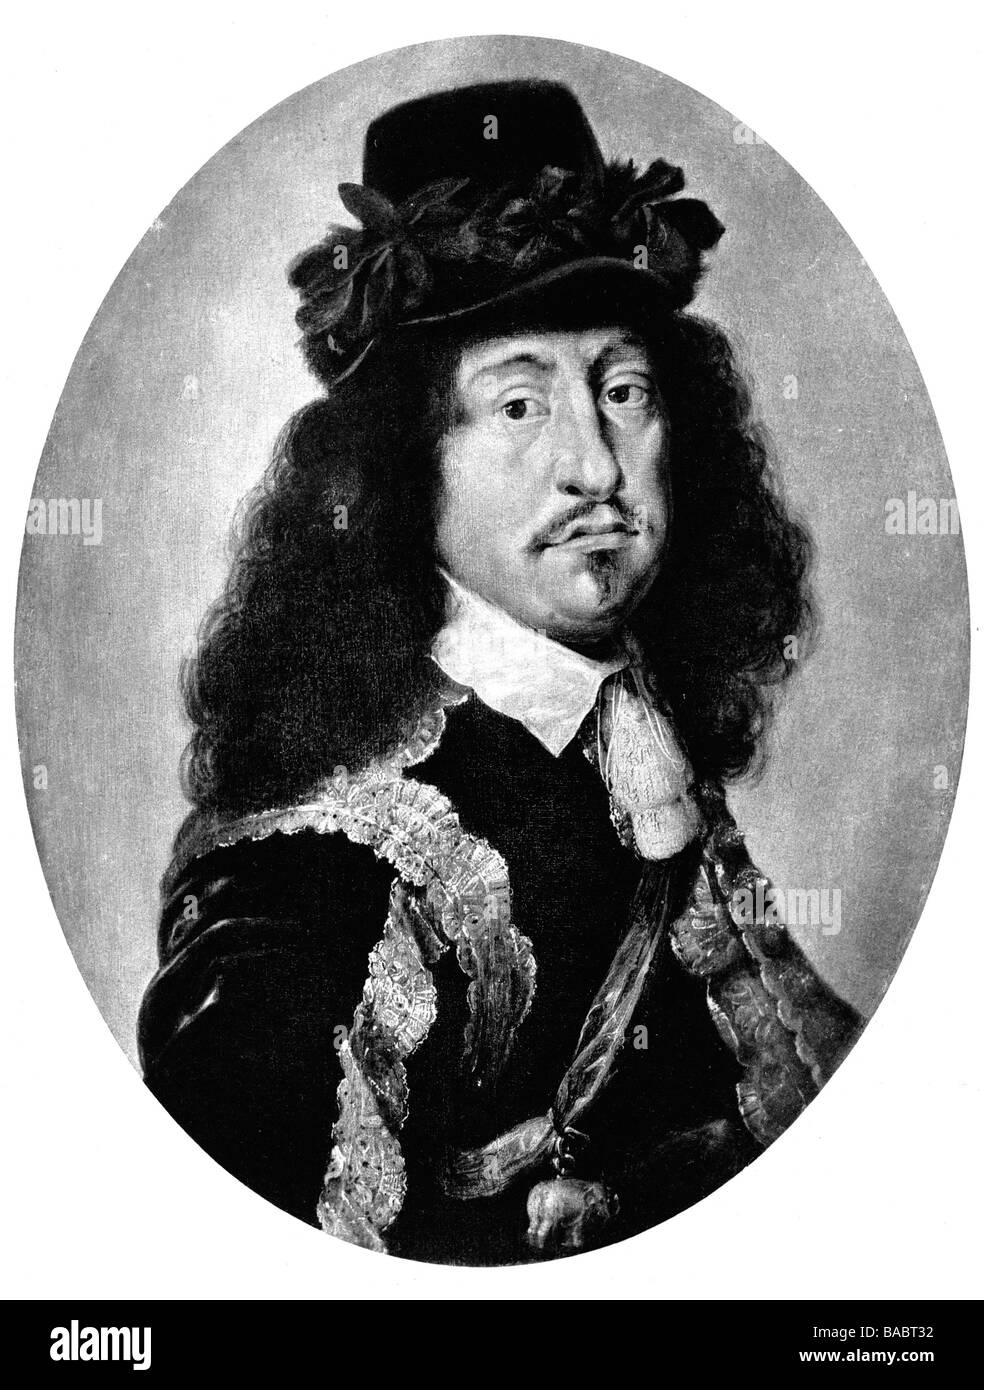 Frederick III, 18.3.1609 - 19.2.1670, King of Denmark 28.2.1648 - 9.2.1670, portrait, after painting by Karl van Stock Photo